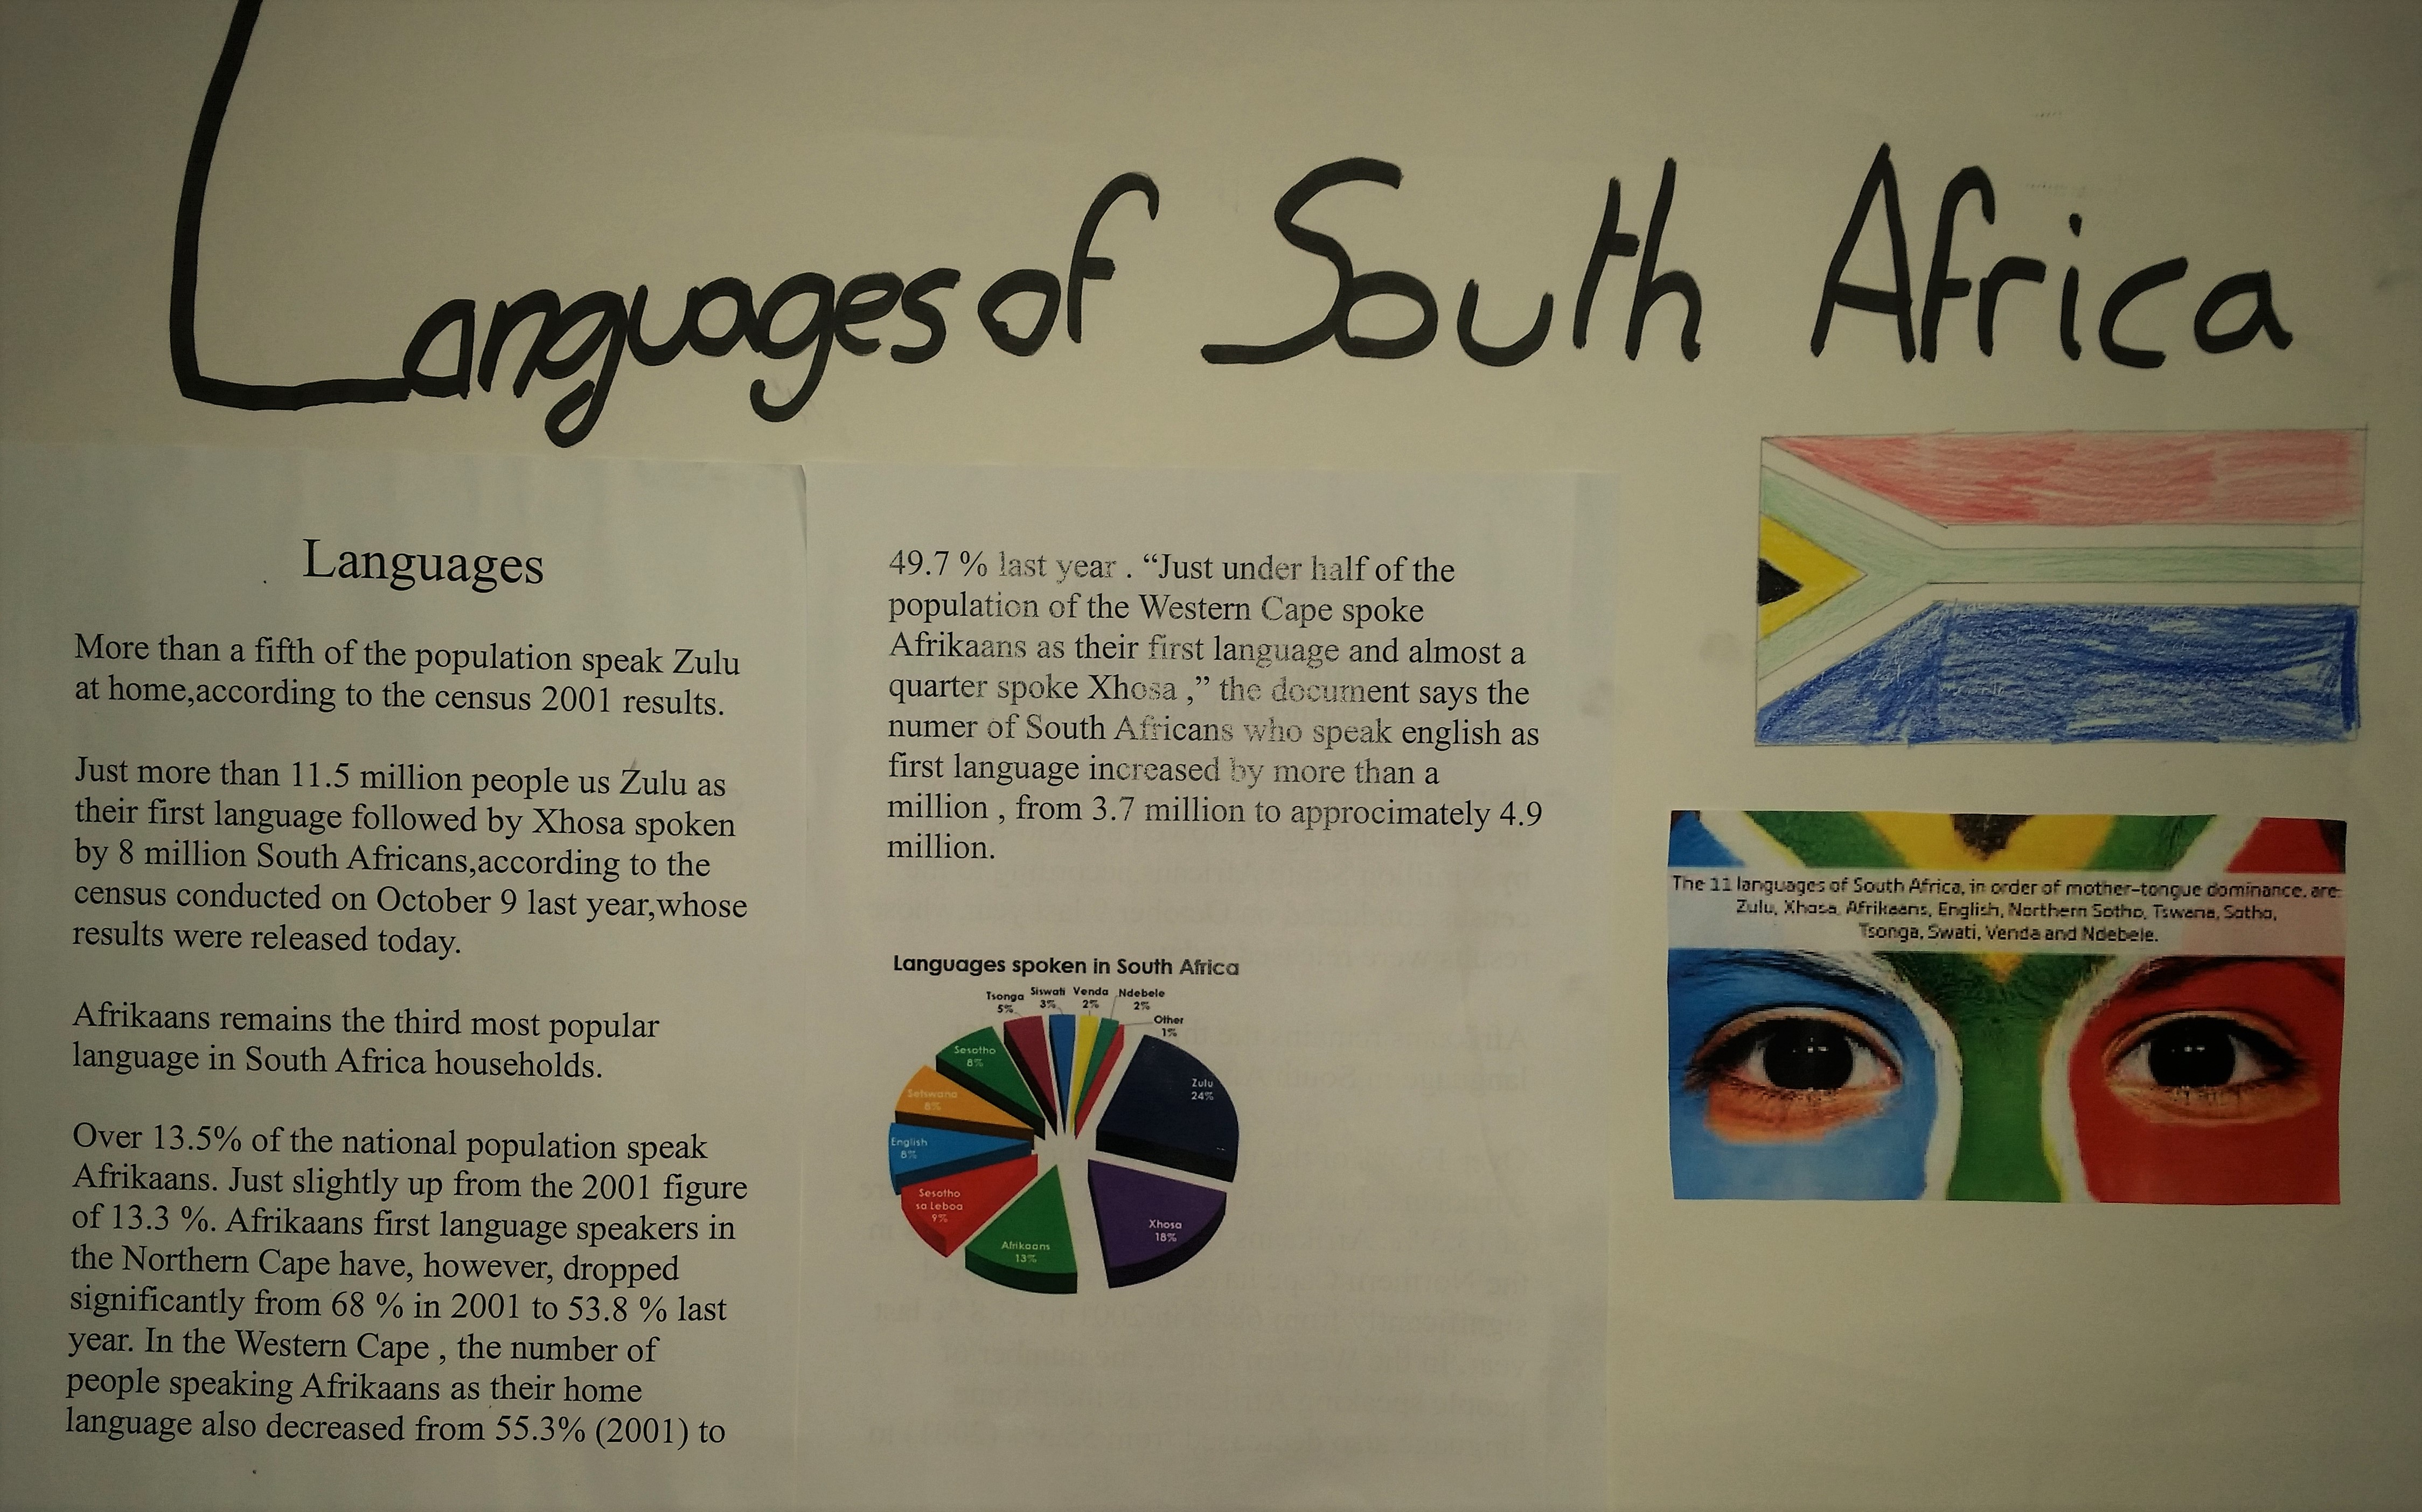 Languages of South Africa